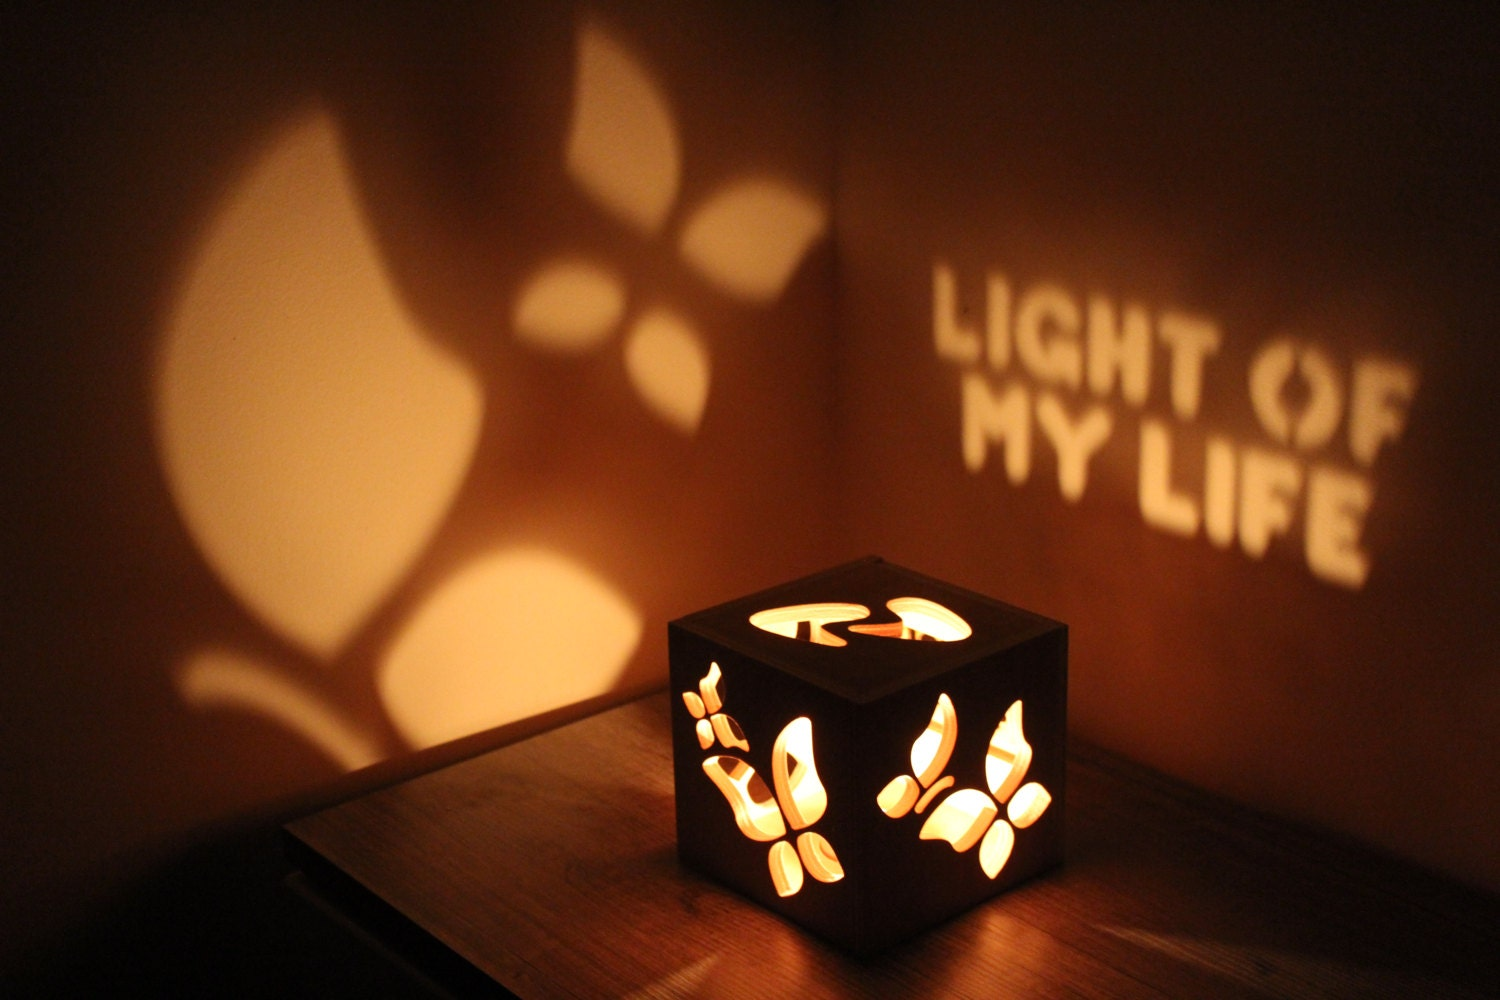 Personalized gift for her him bedroom lighting love sign for Bedroom gifts for her